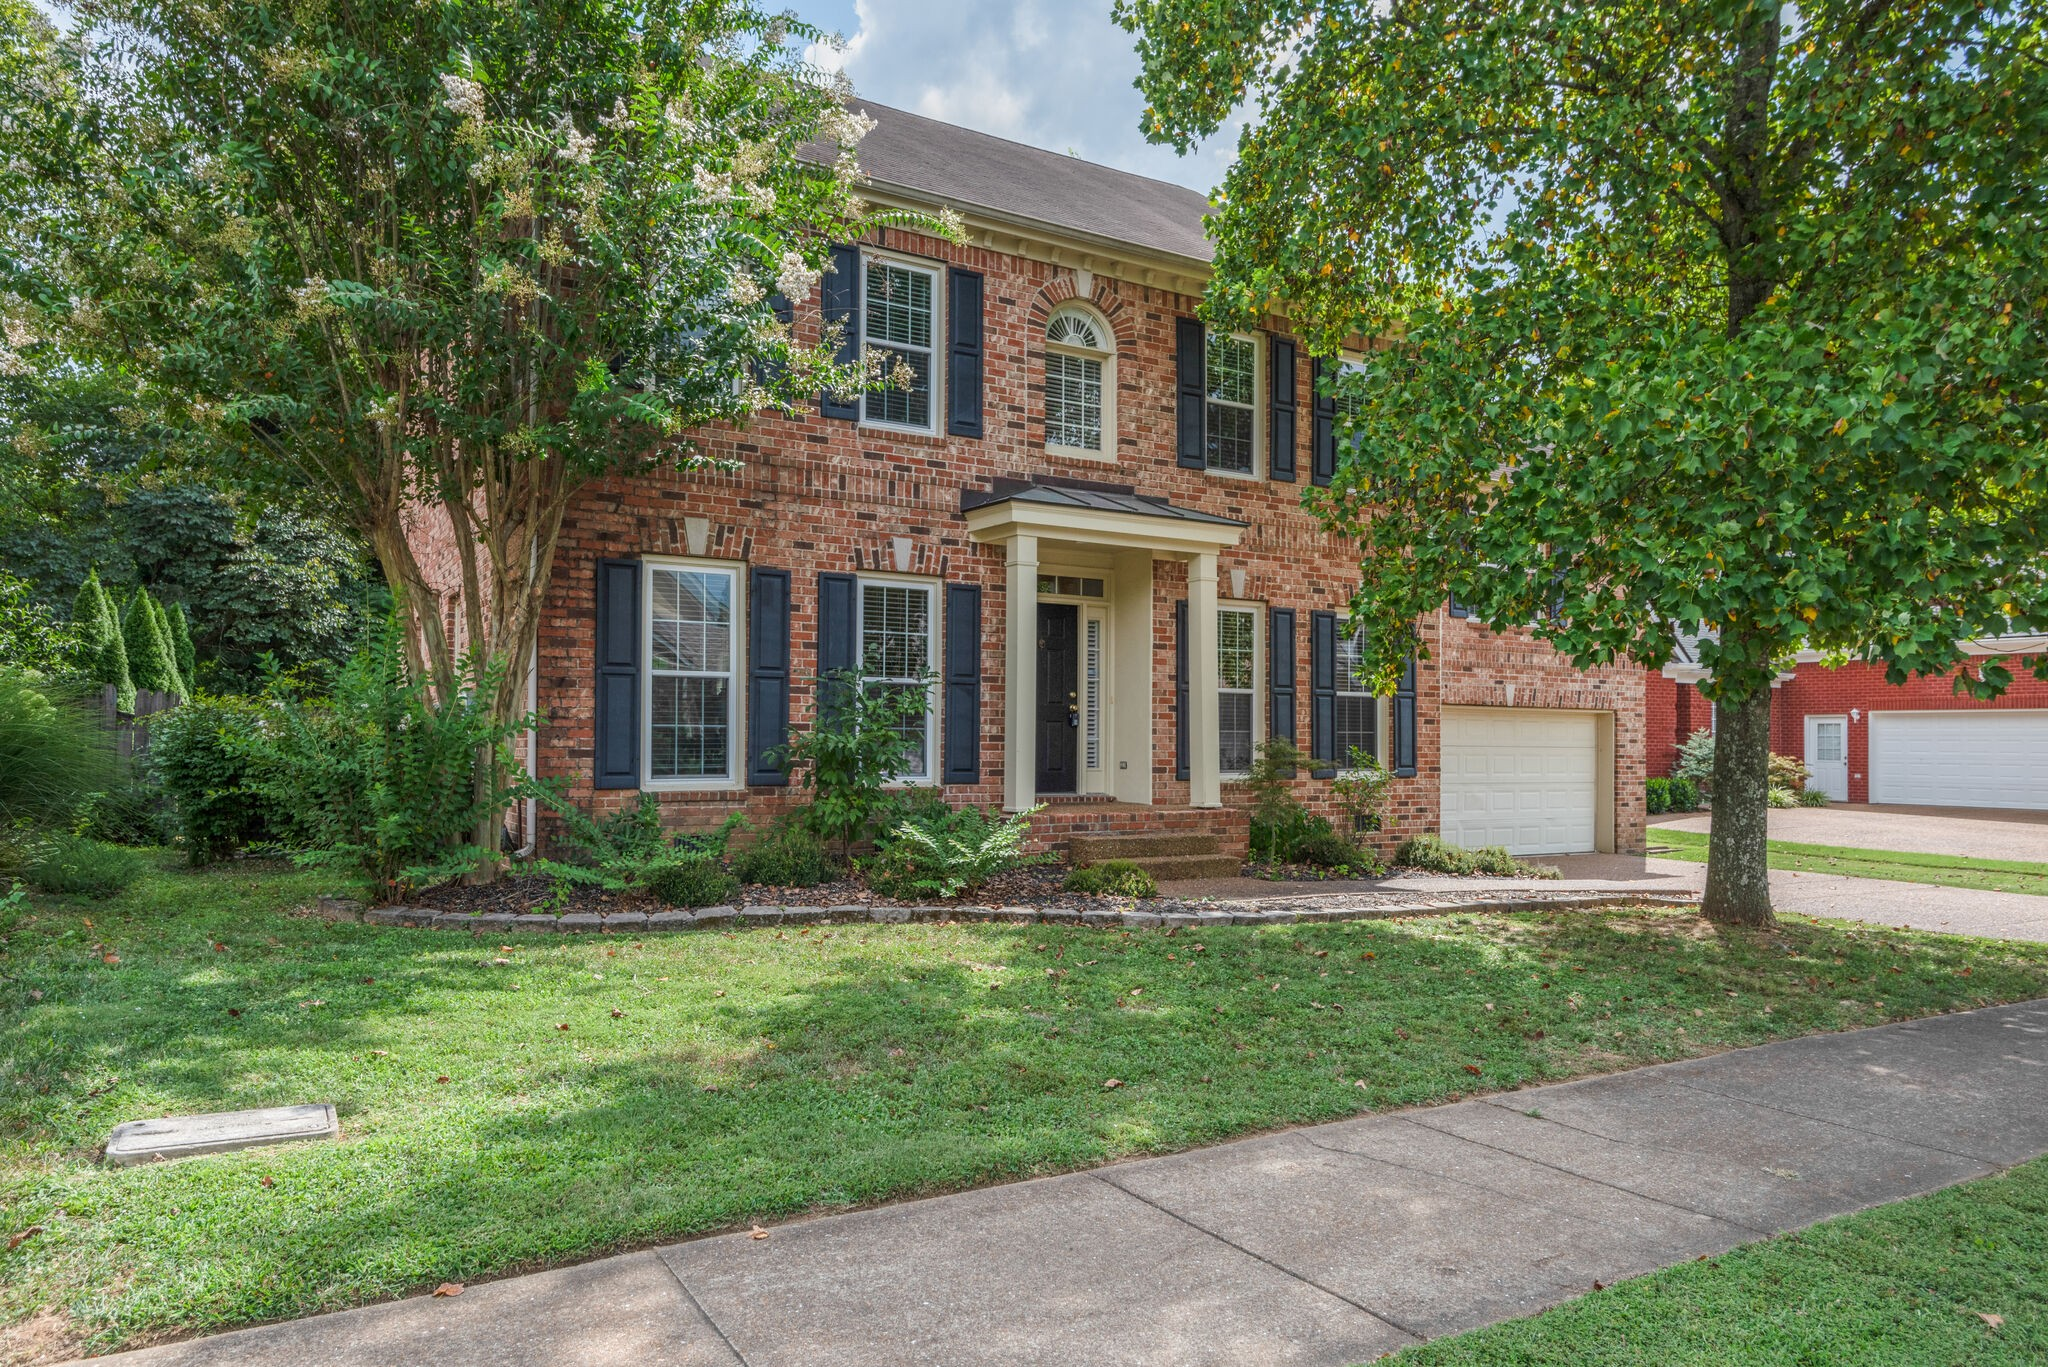 Open Sunday 8-16 2:00 - 4:00 All Brick Polk Place home. New Updates as of this week!! Impressive kitchen! Gorgeous granite and backsplash.! Brand new stainless Fridge! Tankless hot water heater - water is always hot!!  Awesome huge mid-level bonus room. Large back deck overlooking very private fenced back yard. Convenient, quiet, sought after neighborhood w/sidewalks, community pool and pond stocked w/fish for residents. Only 2 miles to downtown historic Franklin.